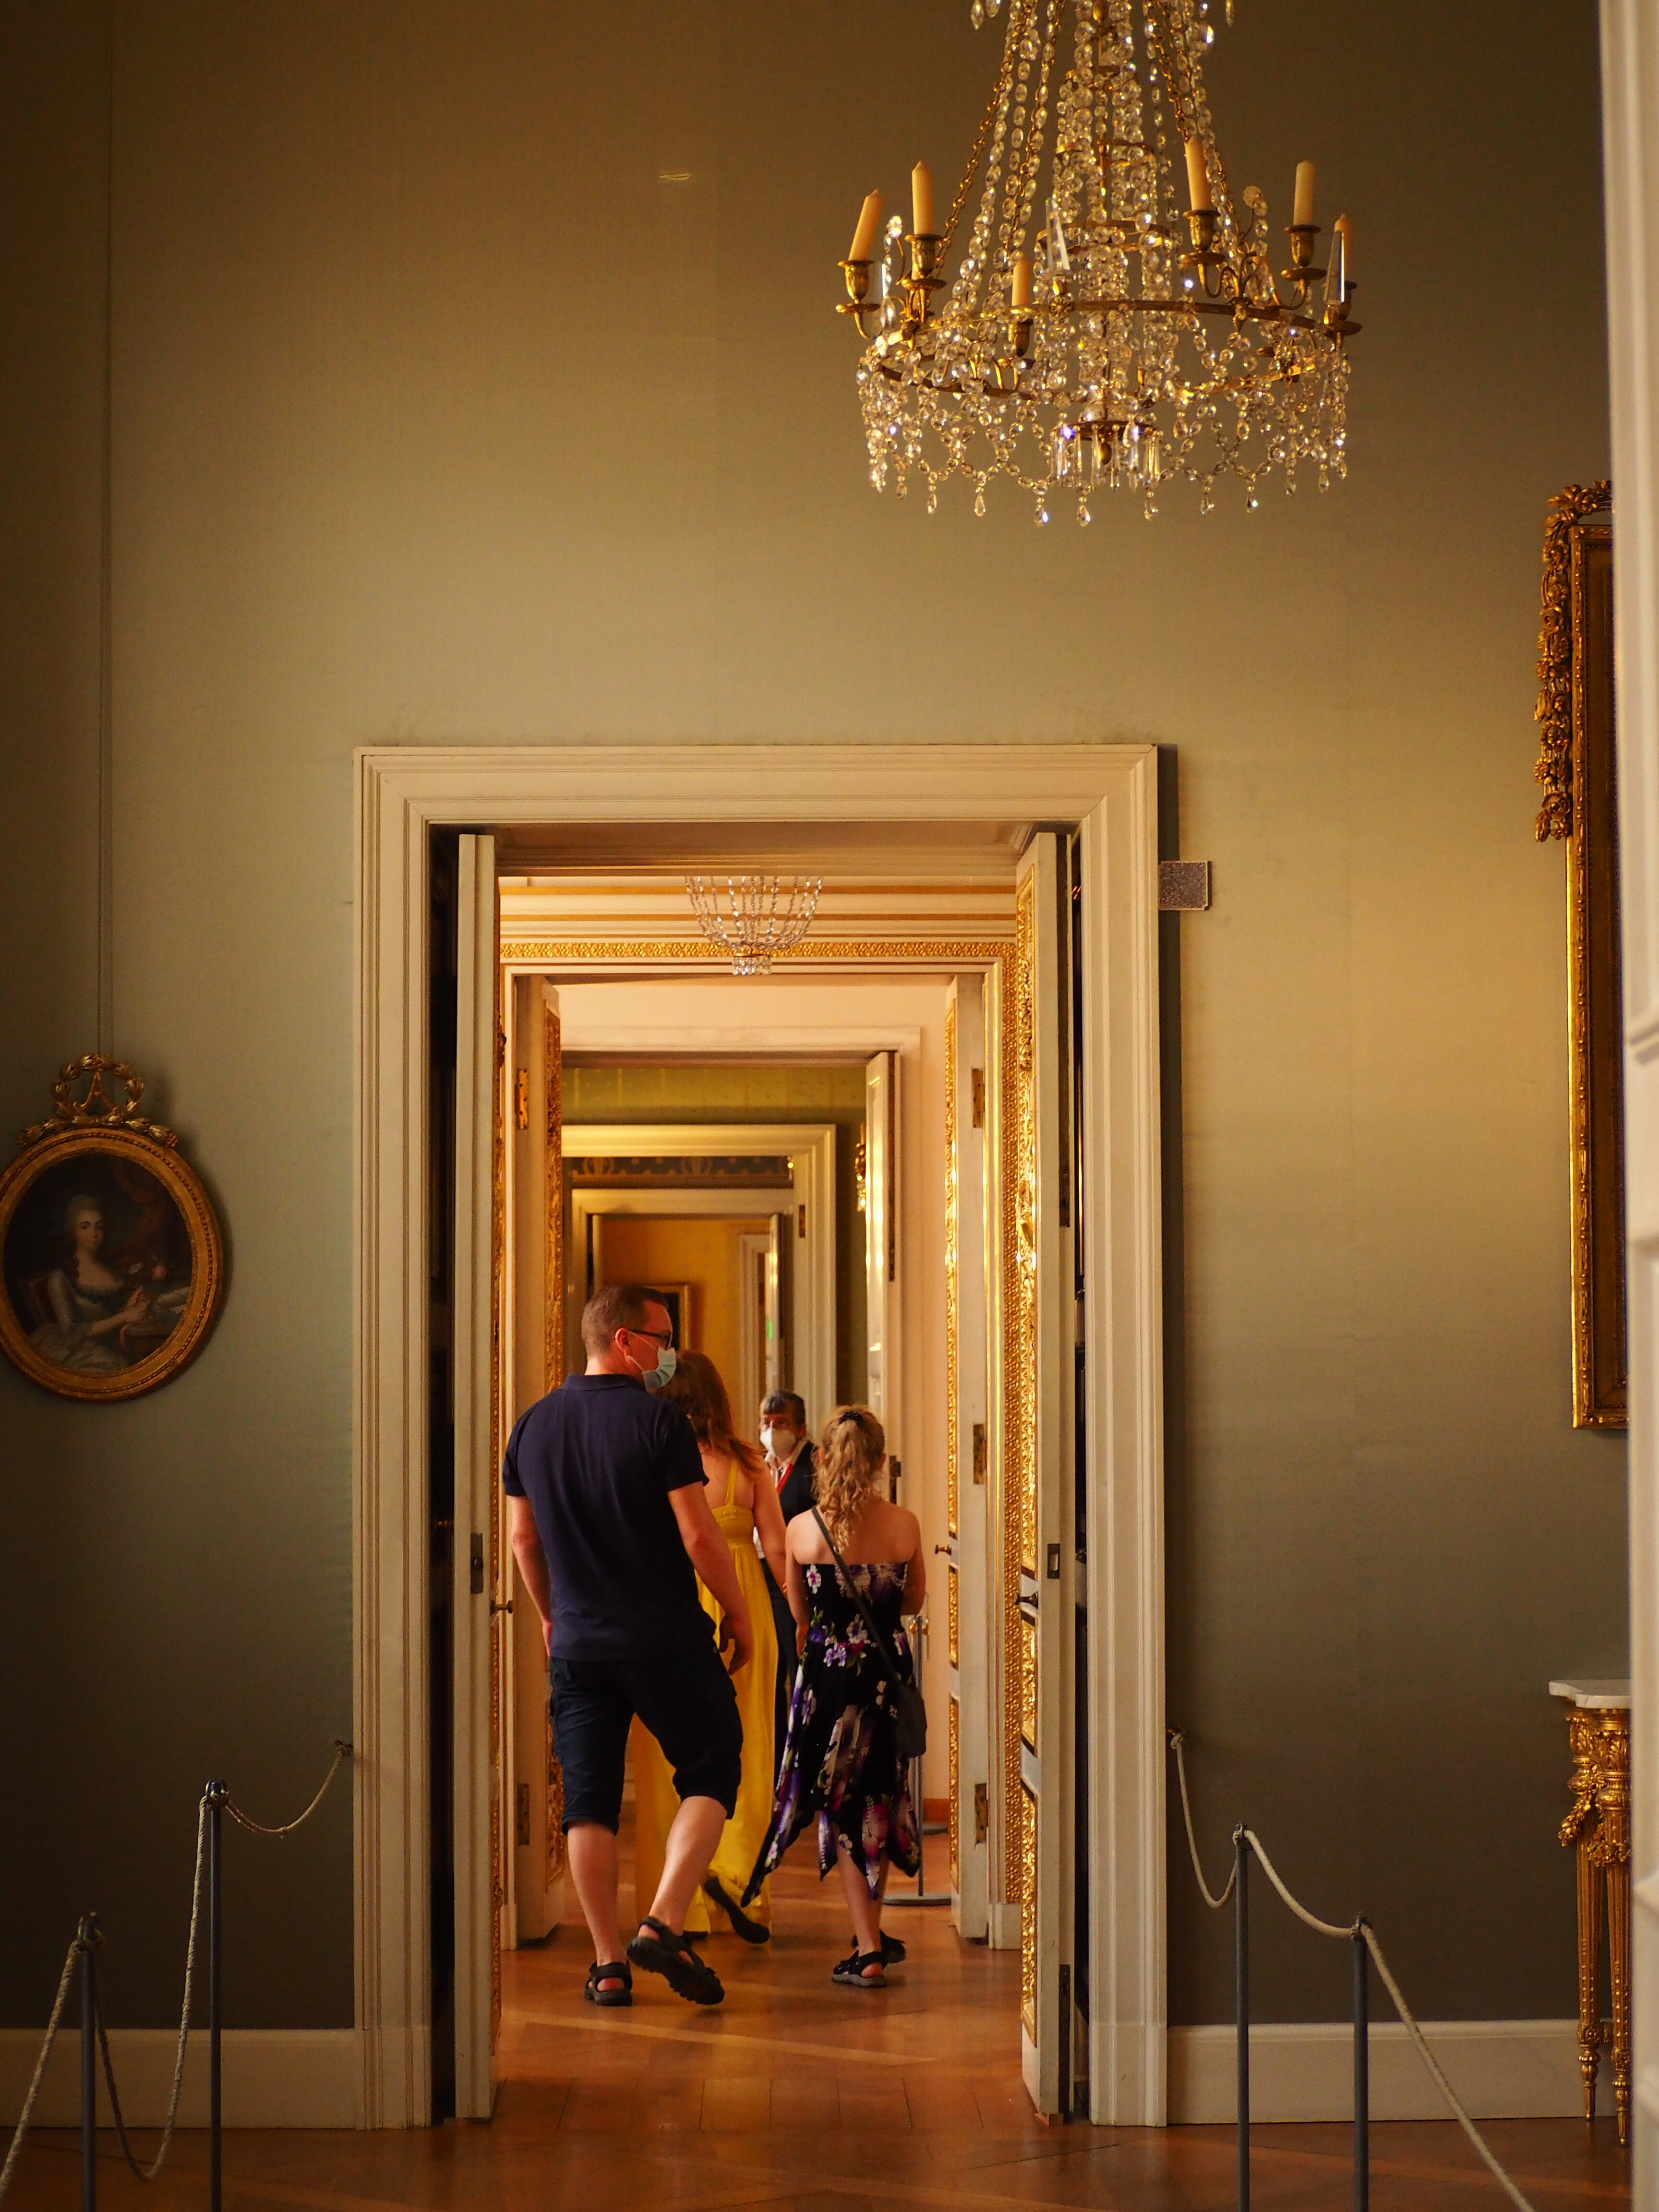 residenz-Munich-musees-interieur-classique-rotated